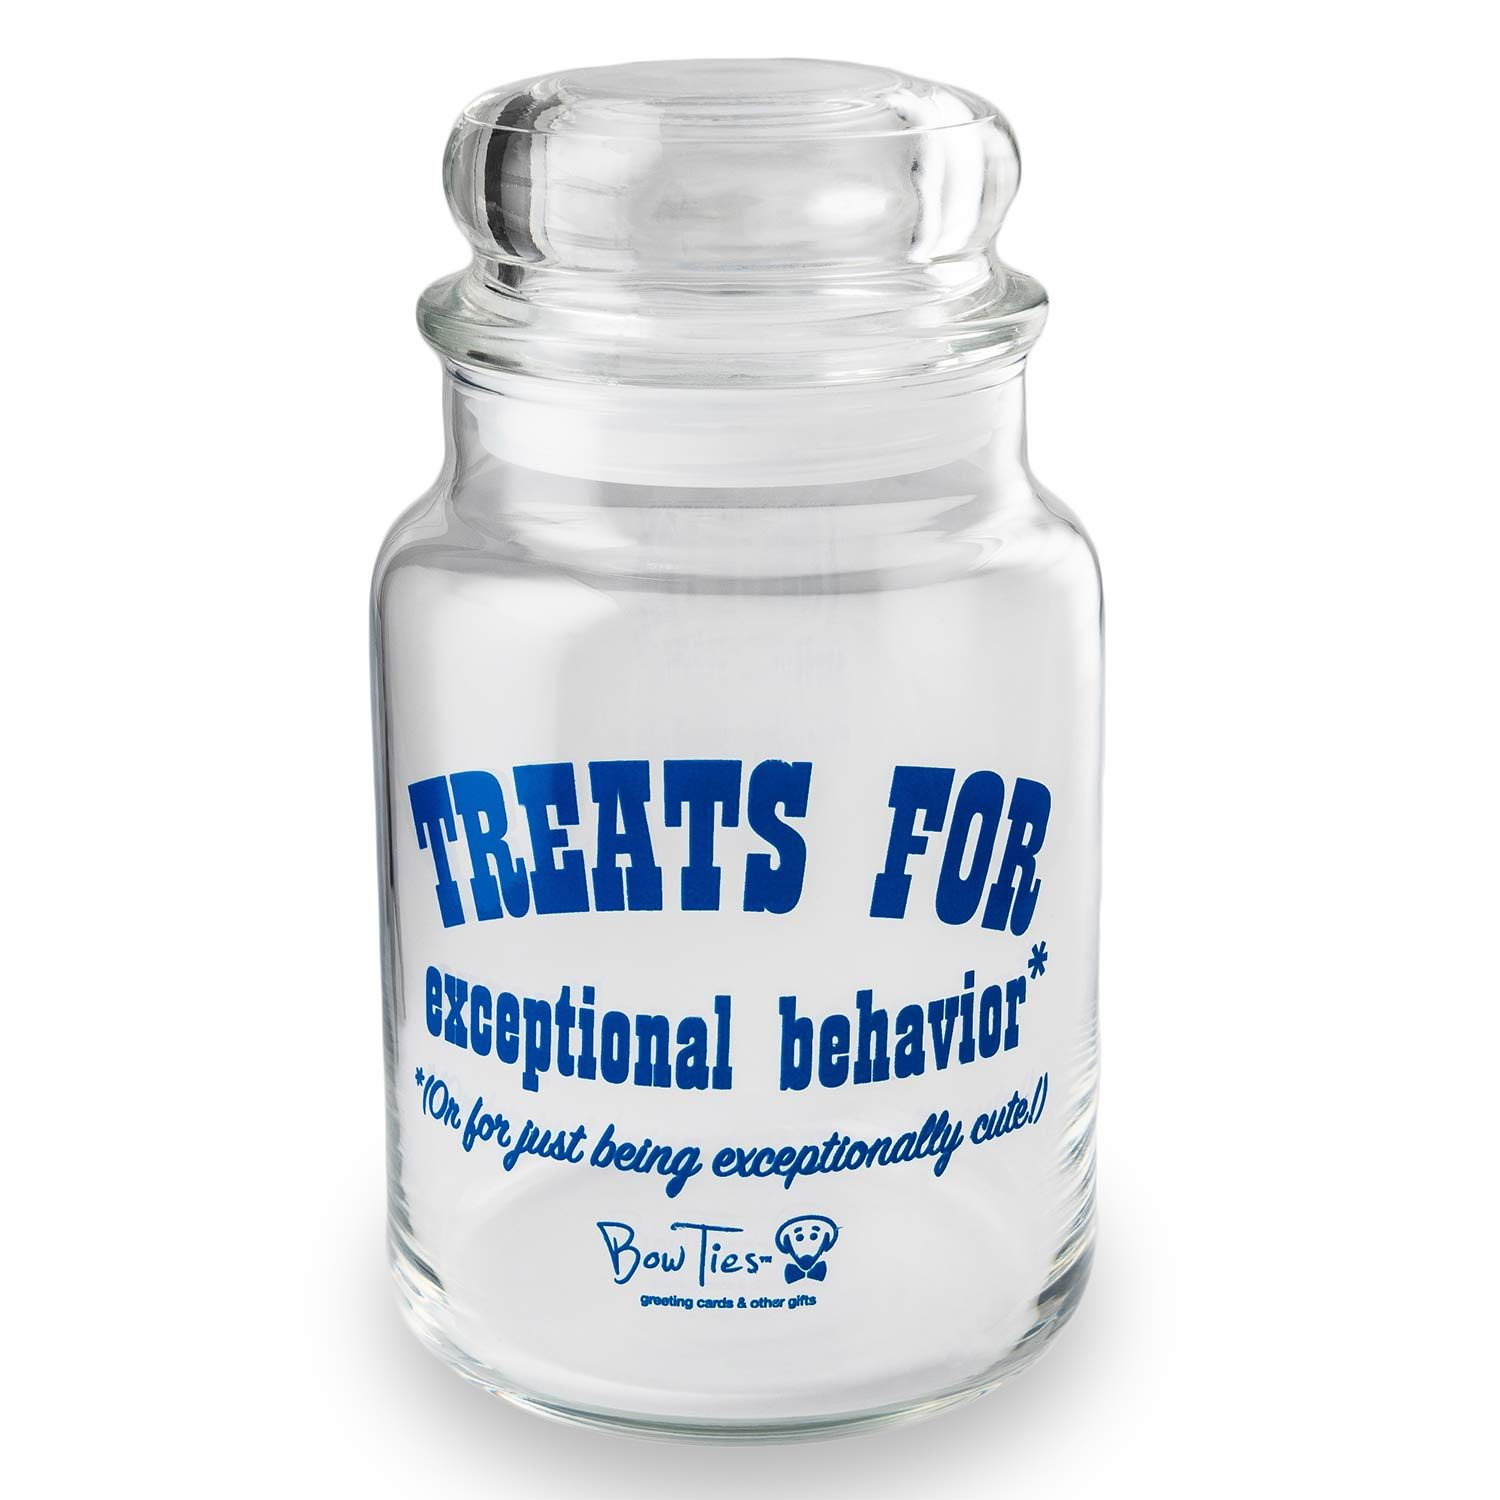 Treats For Exceptional Behavior pet treat jar by Beau Tyler